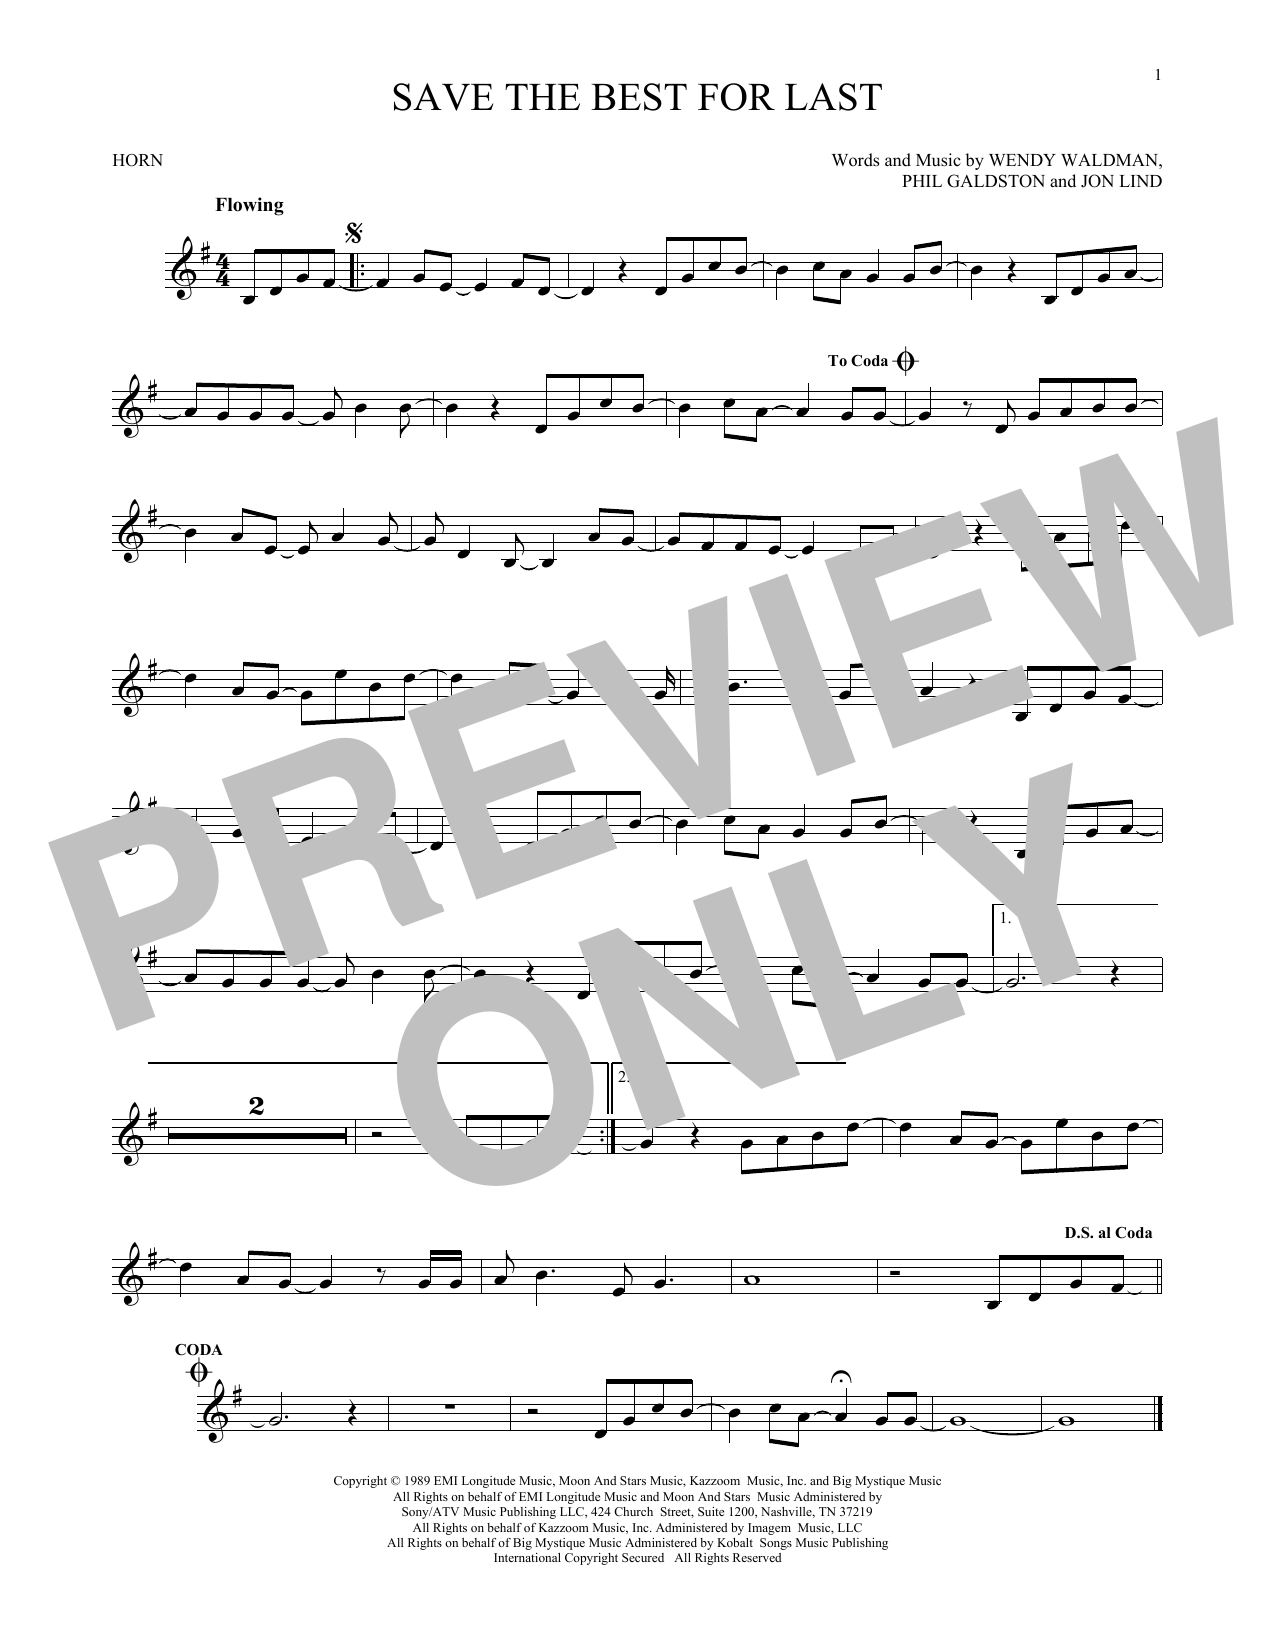 Save The Best For Last (French Horn Solo)